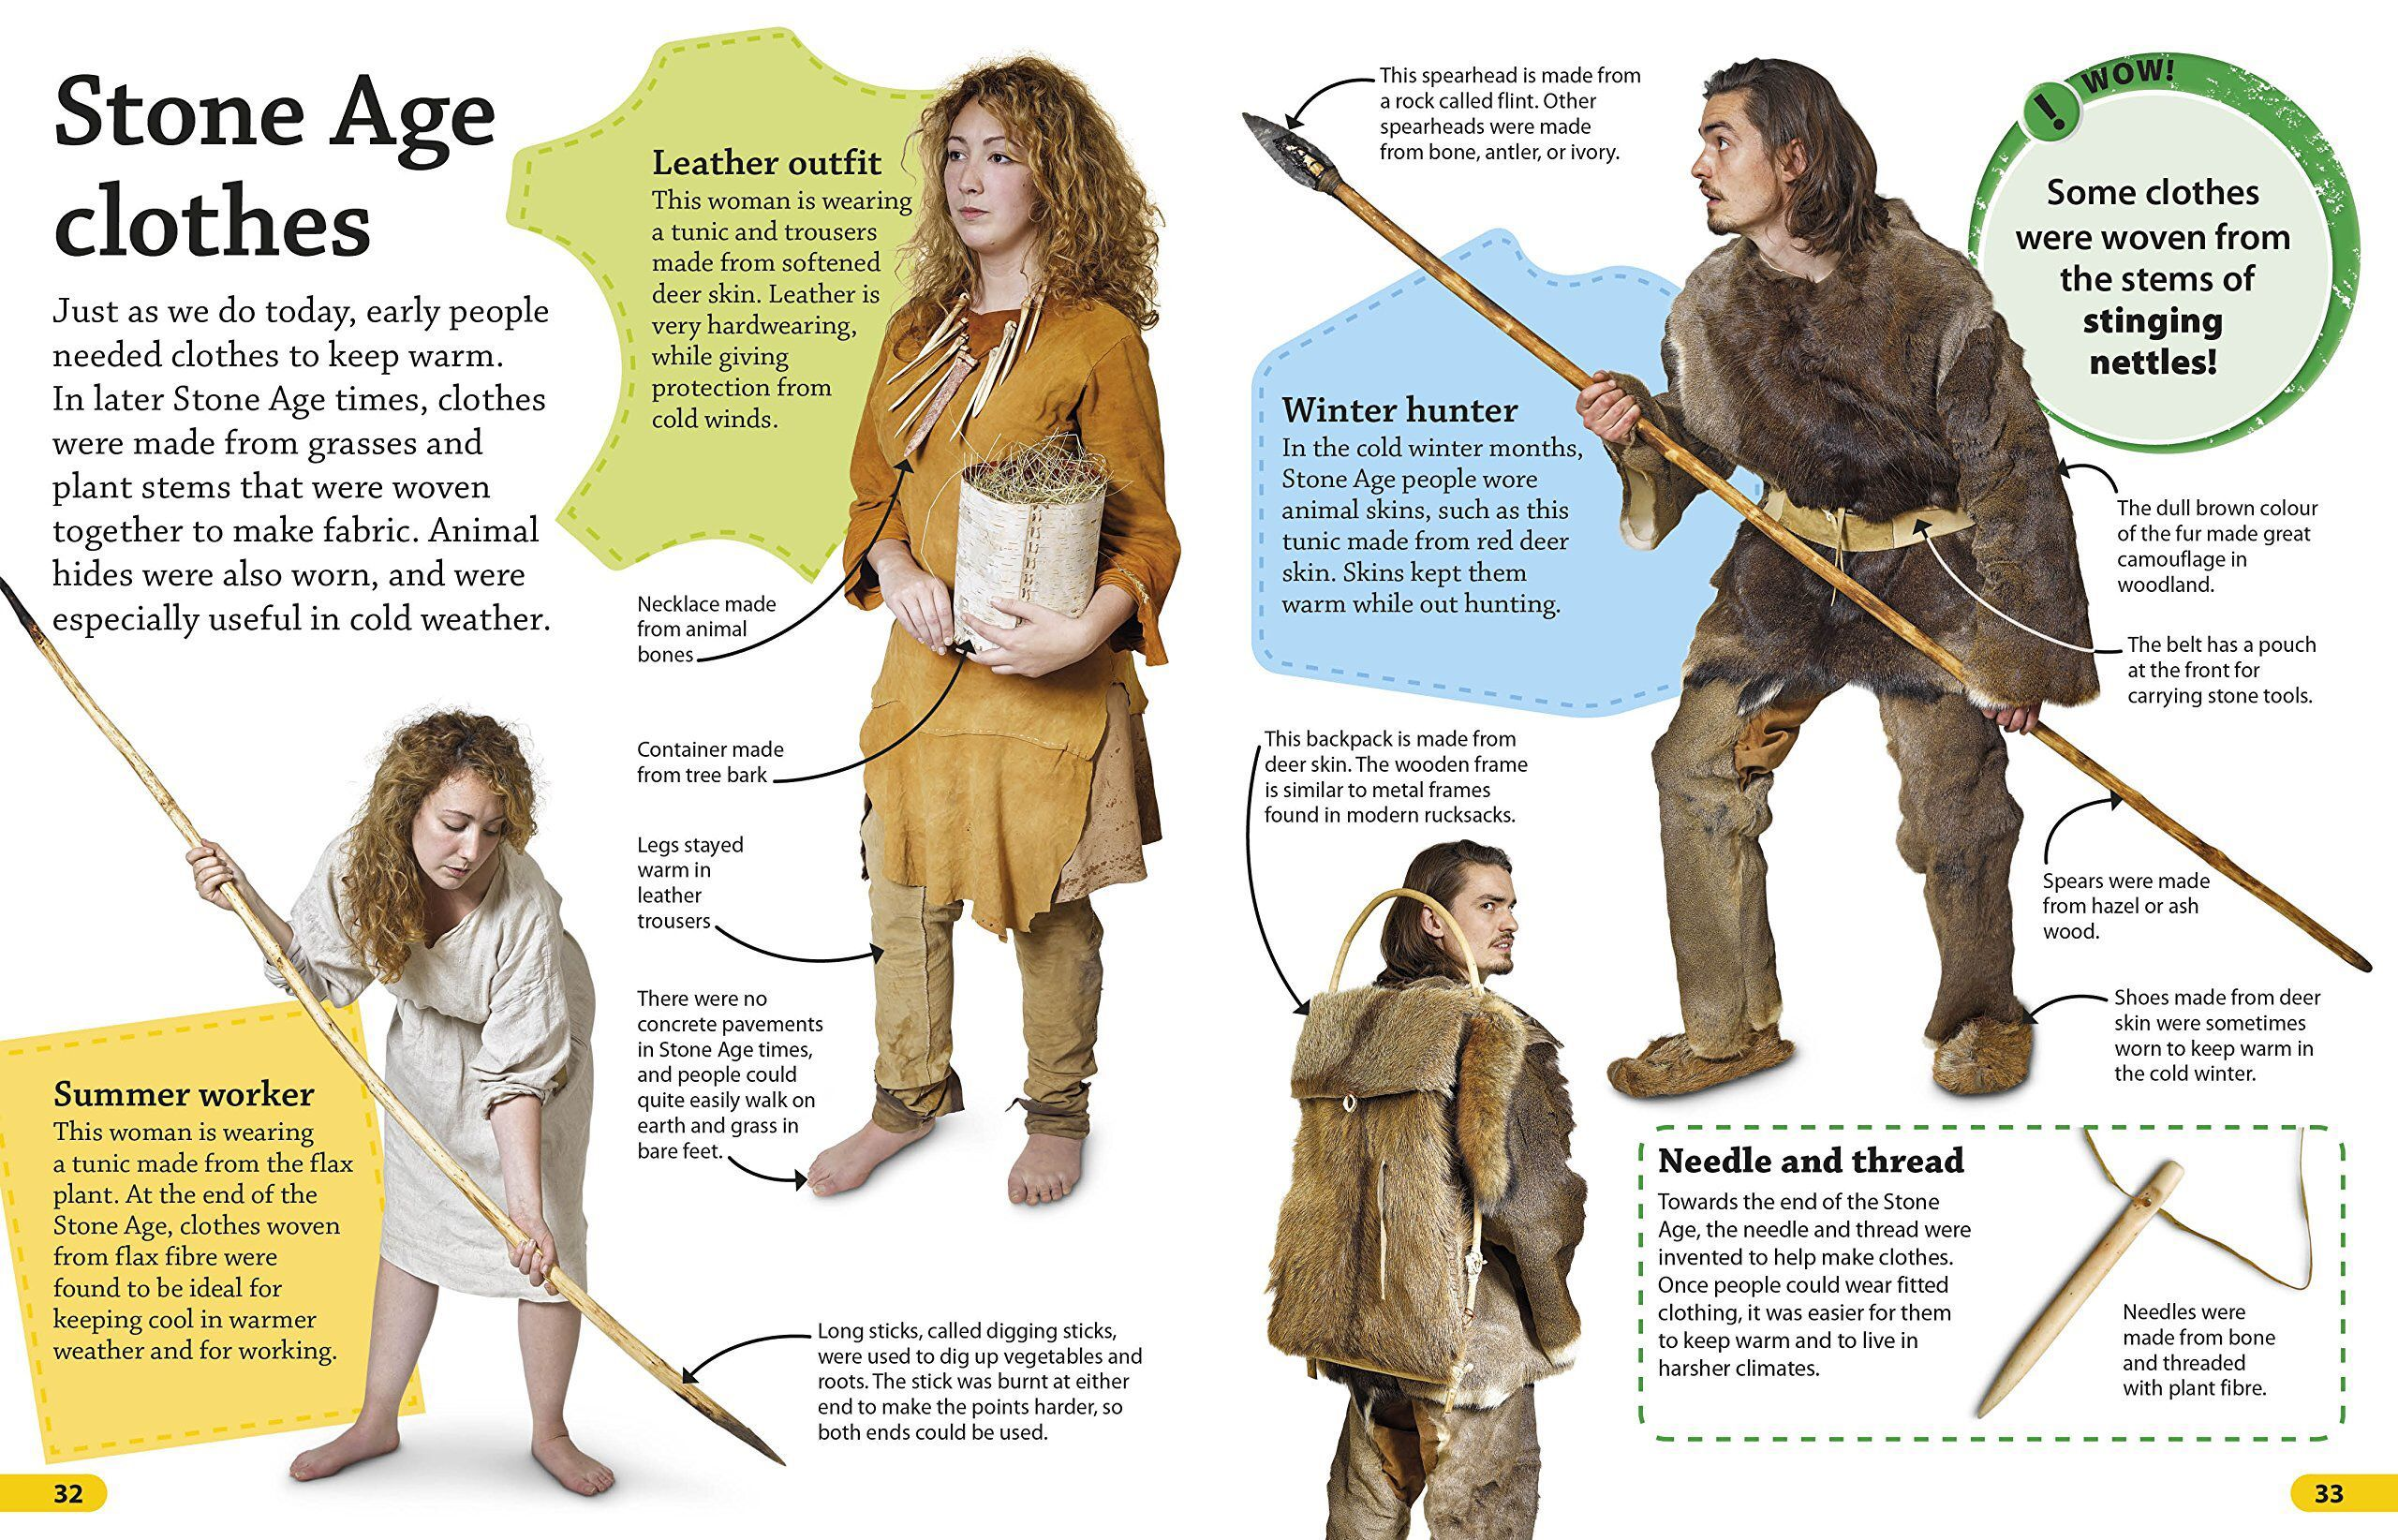 Sumptuous What Did Paleolithic People Wear In